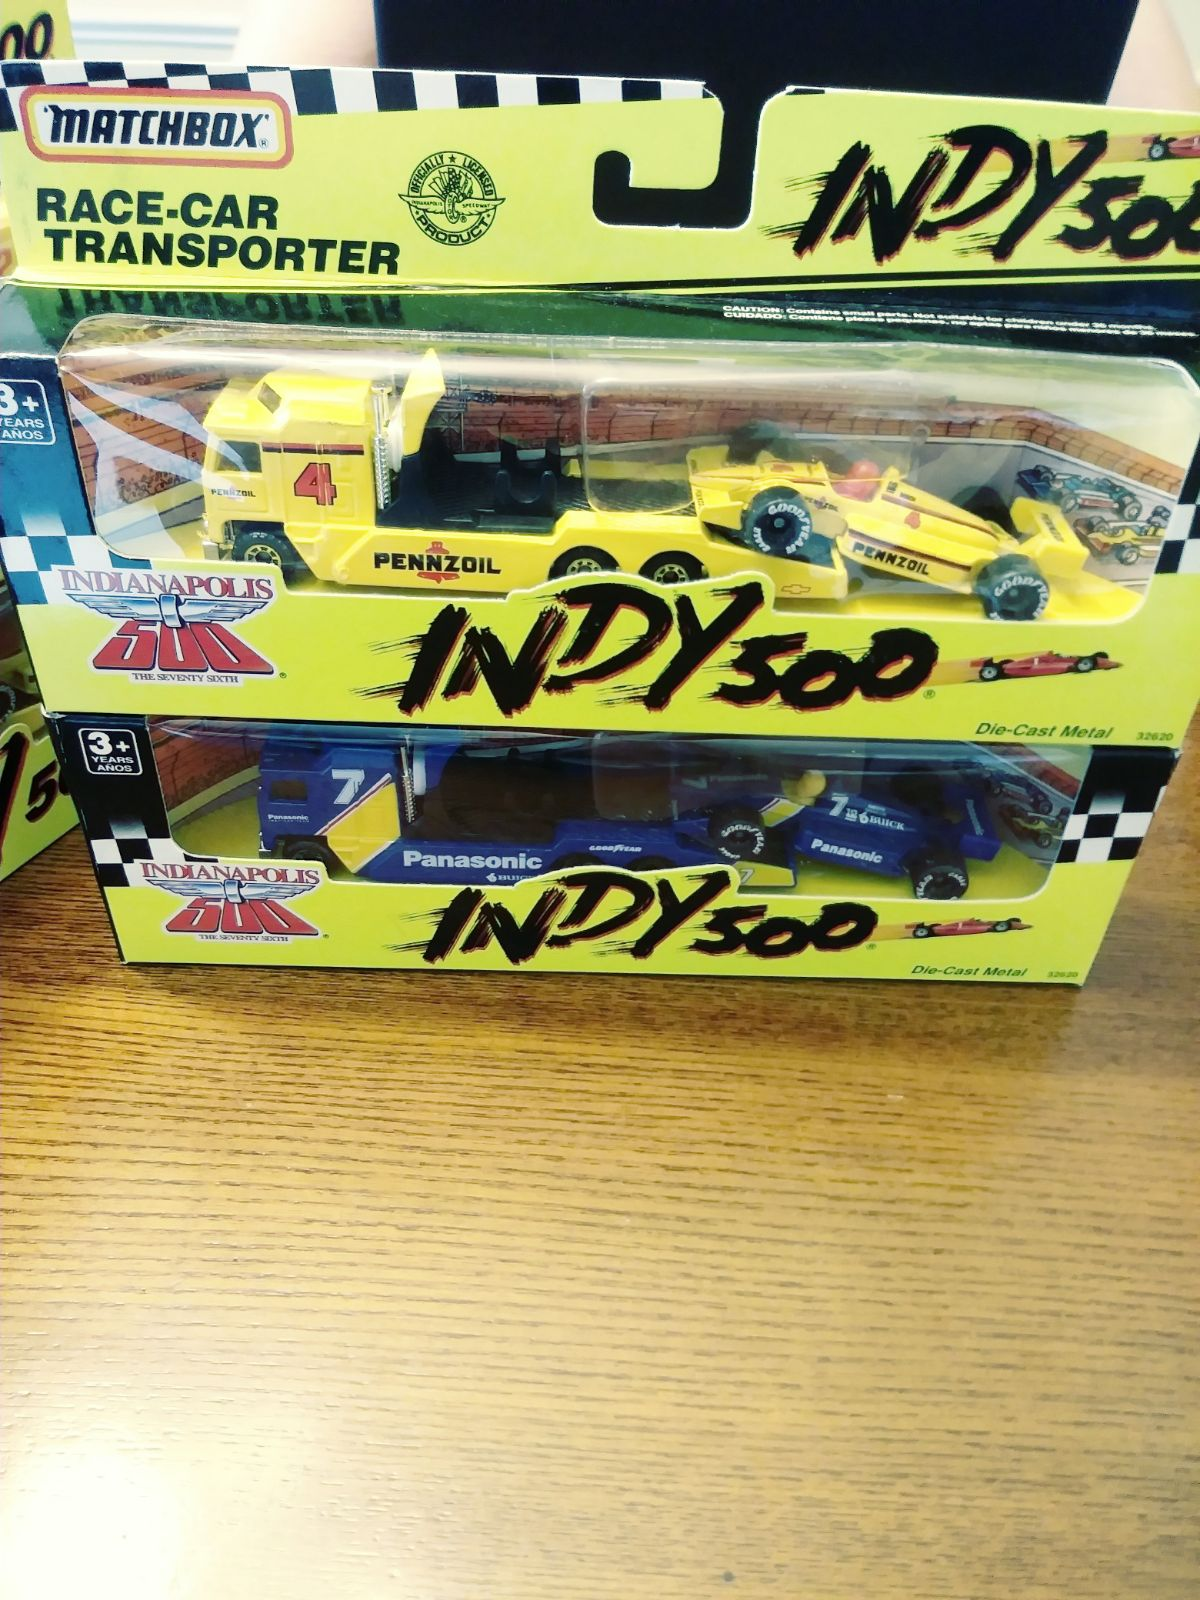 Matchbox Indy 500 Transporters & Cars